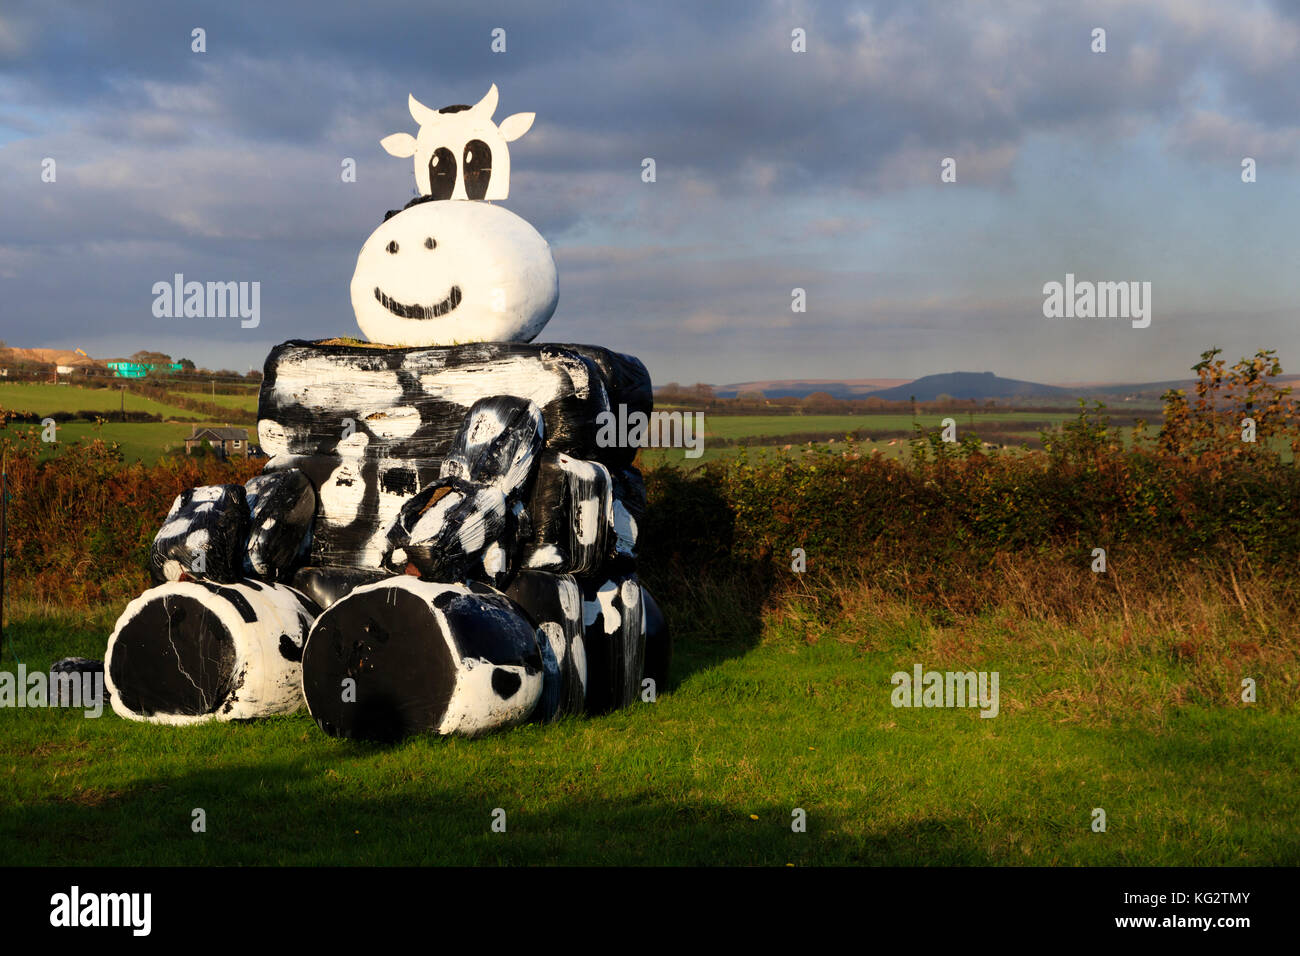 black-plastic-coated-hay-bales-for-winter-fodder-arranged-and-painted-KG2TMY.jpg